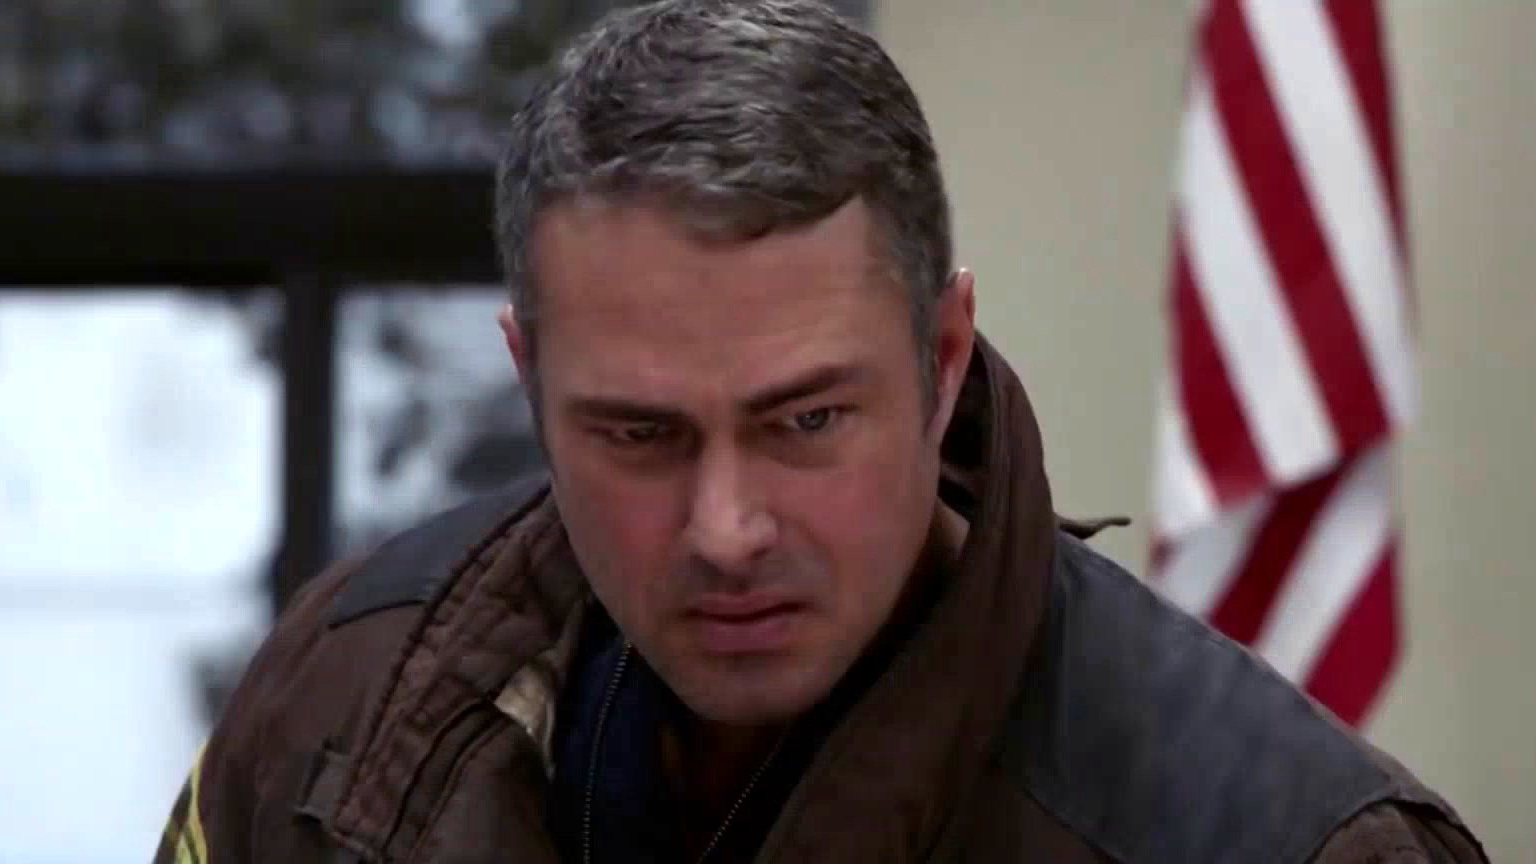 Chicago Fire: Severide And Casey Are Determined To Find Out Who Keeps Causing False Alarms